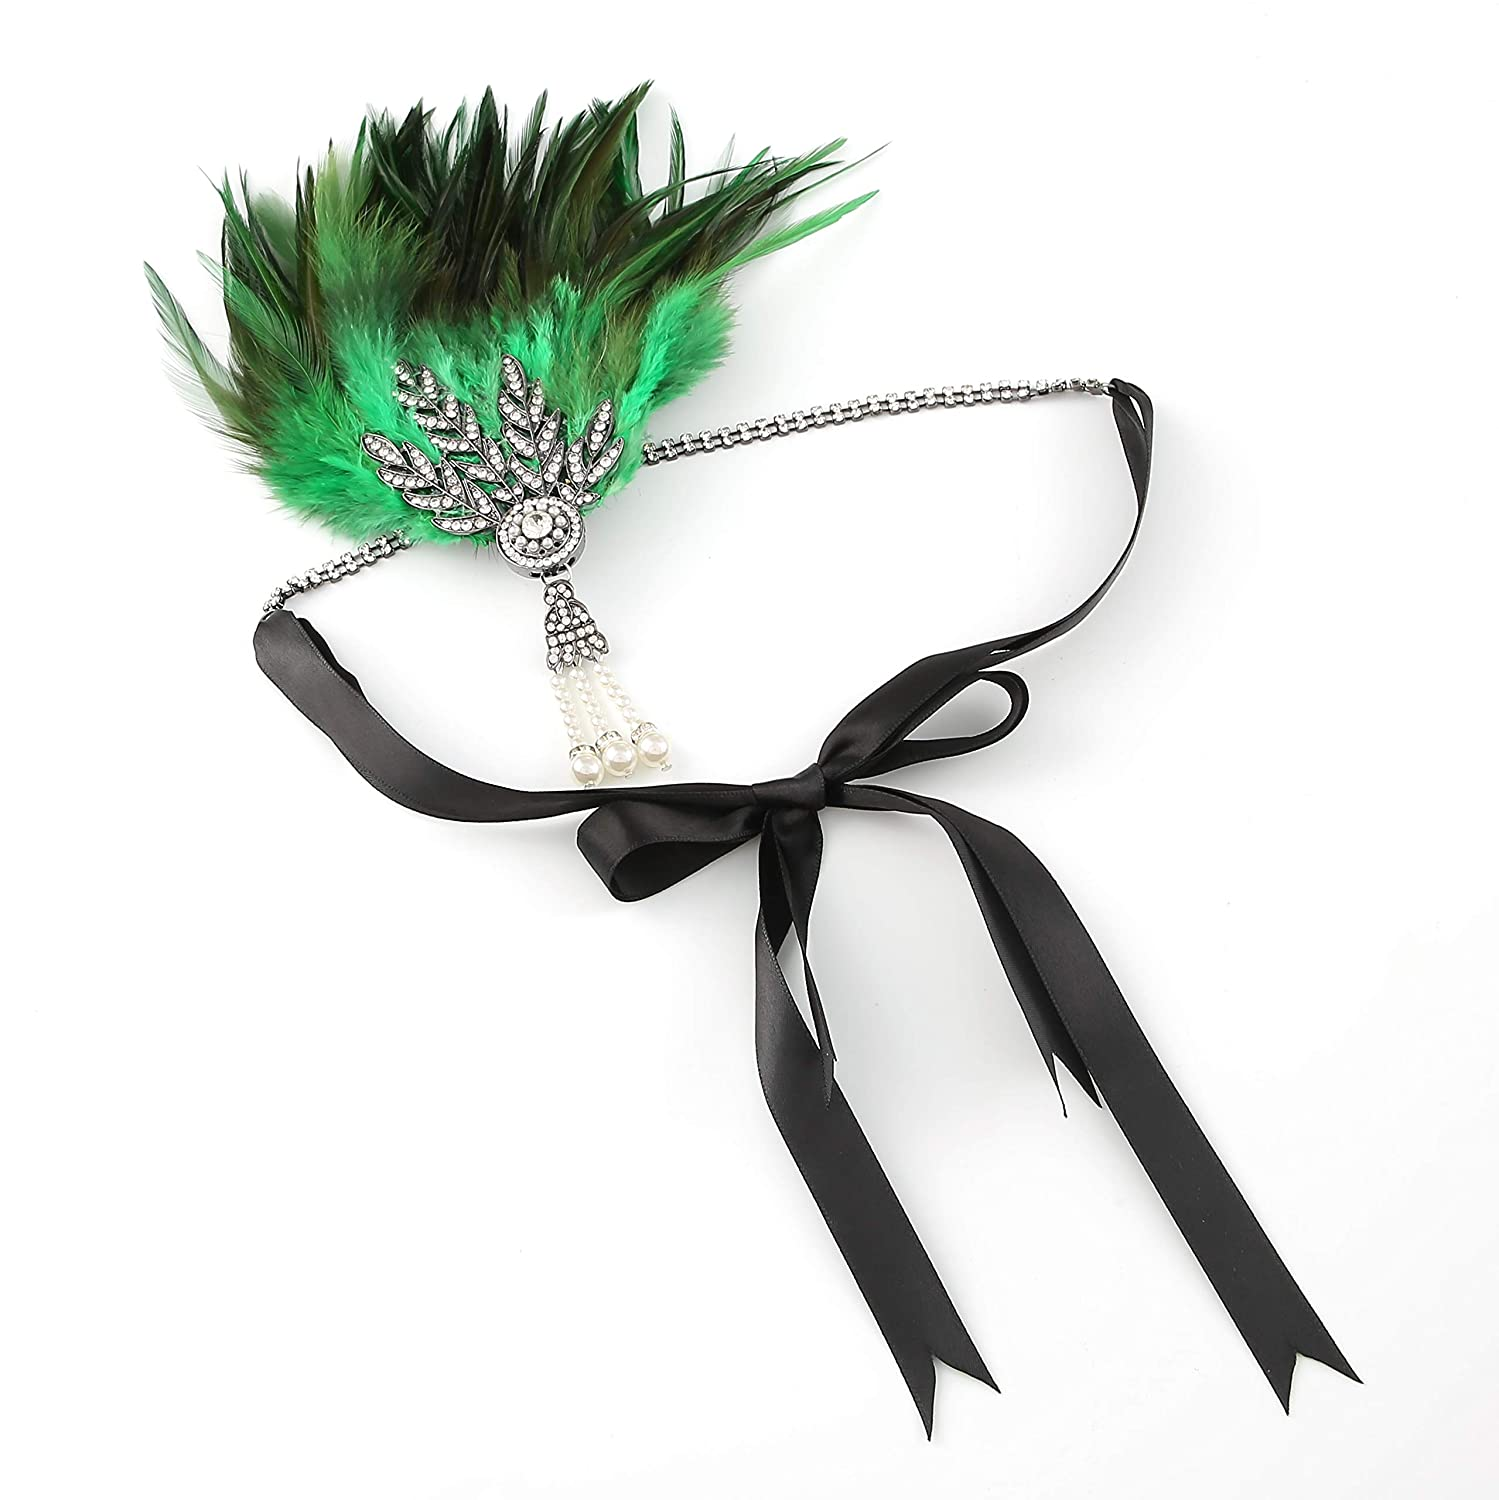 Metme Roaring 20s Flapper Headband Crystal Great Gatsby Headpiece Feather Vintage 1920s Costume Hair Accessories